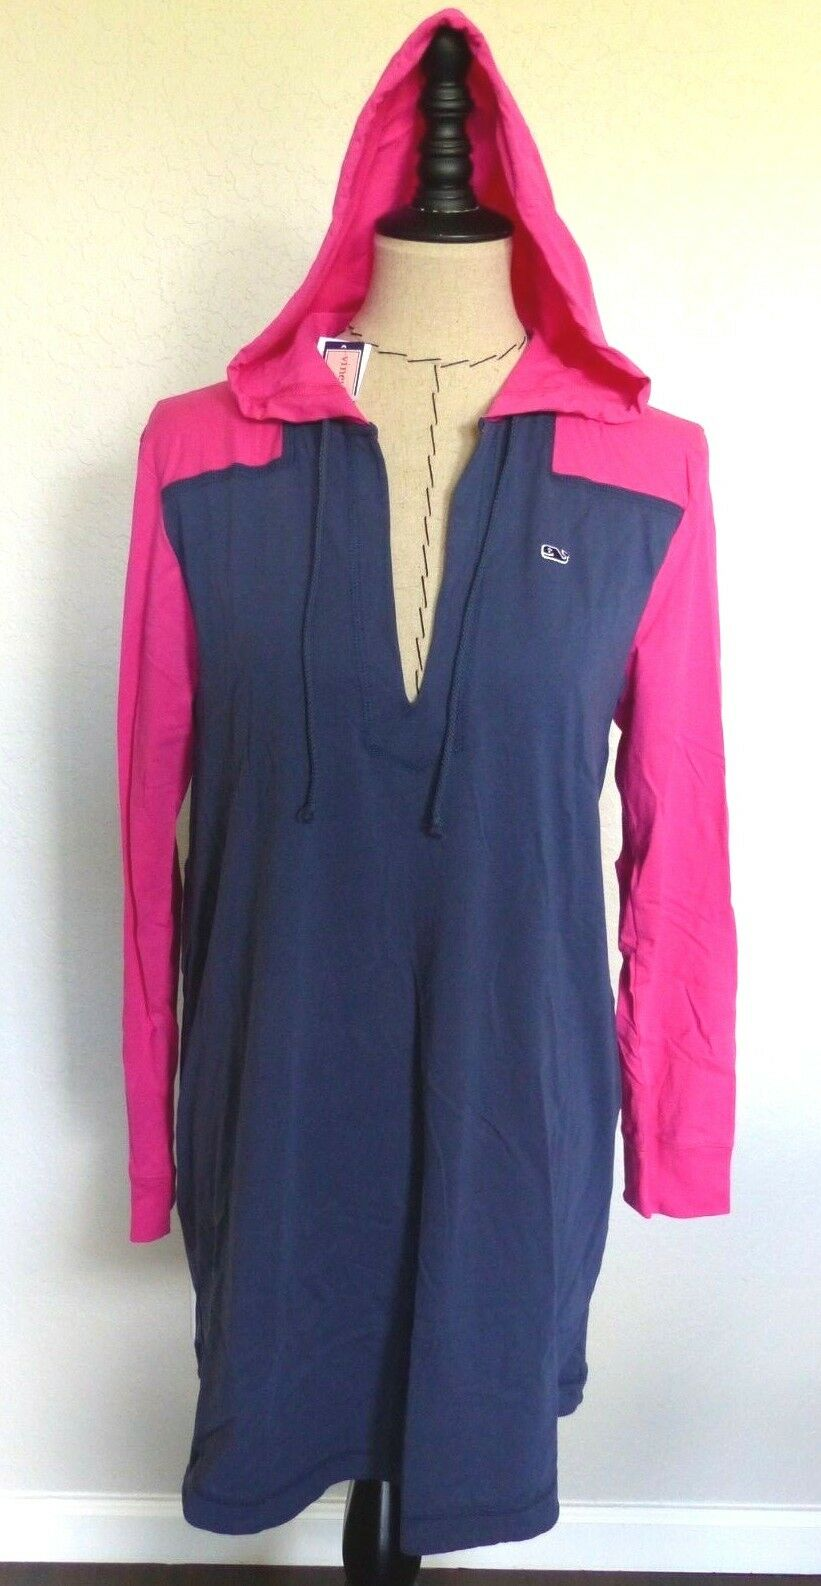 VINEYARD VINES Women's Long Sleeve Hoodie Tee DRESS  Size LG Pink Navy NWT